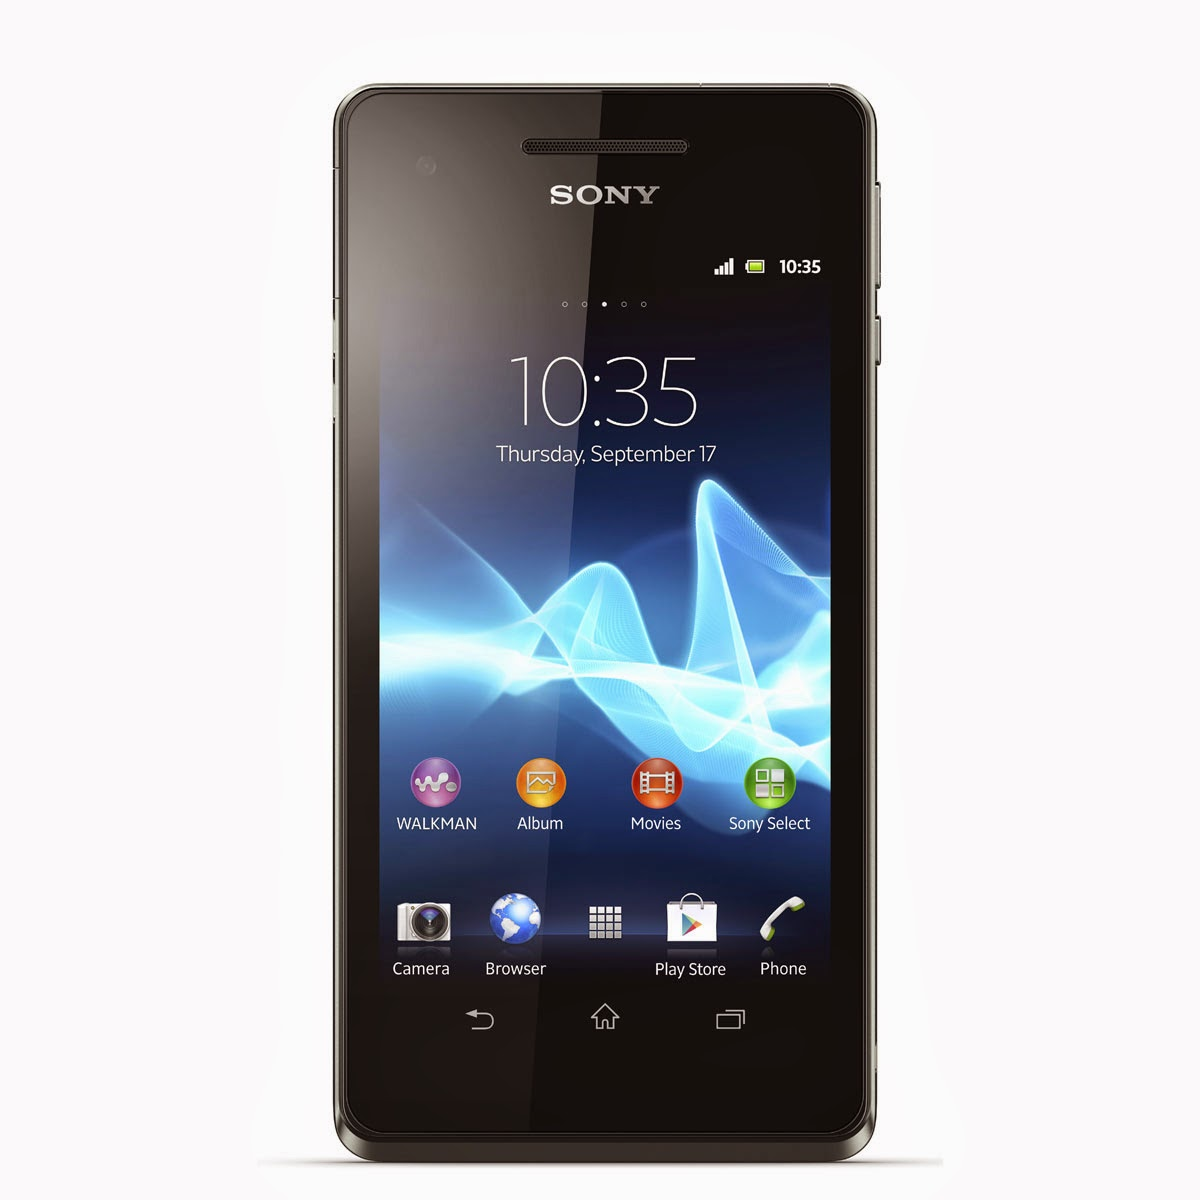 sony xperia v noir 4g smartphone 4 3 pouces comparatif smartphones. Black Bedroom Furniture Sets. Home Design Ideas